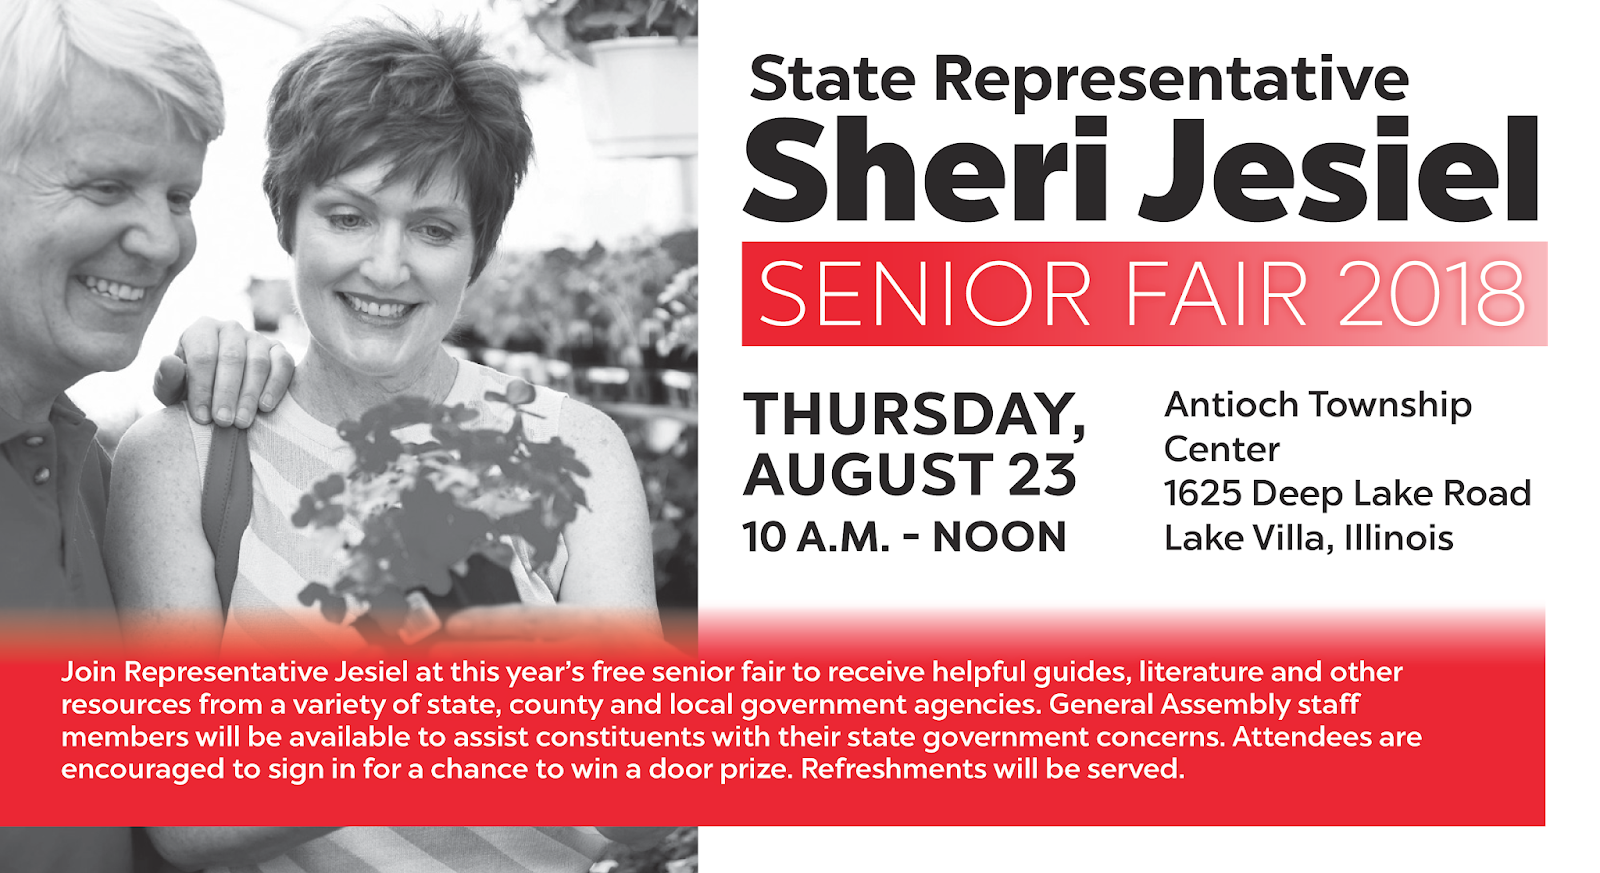 Illinois State Representative Sheri Jesiel Senior Fair 2018 Email This Blogthis Share To Twitter Facebook On Tuesday July 24